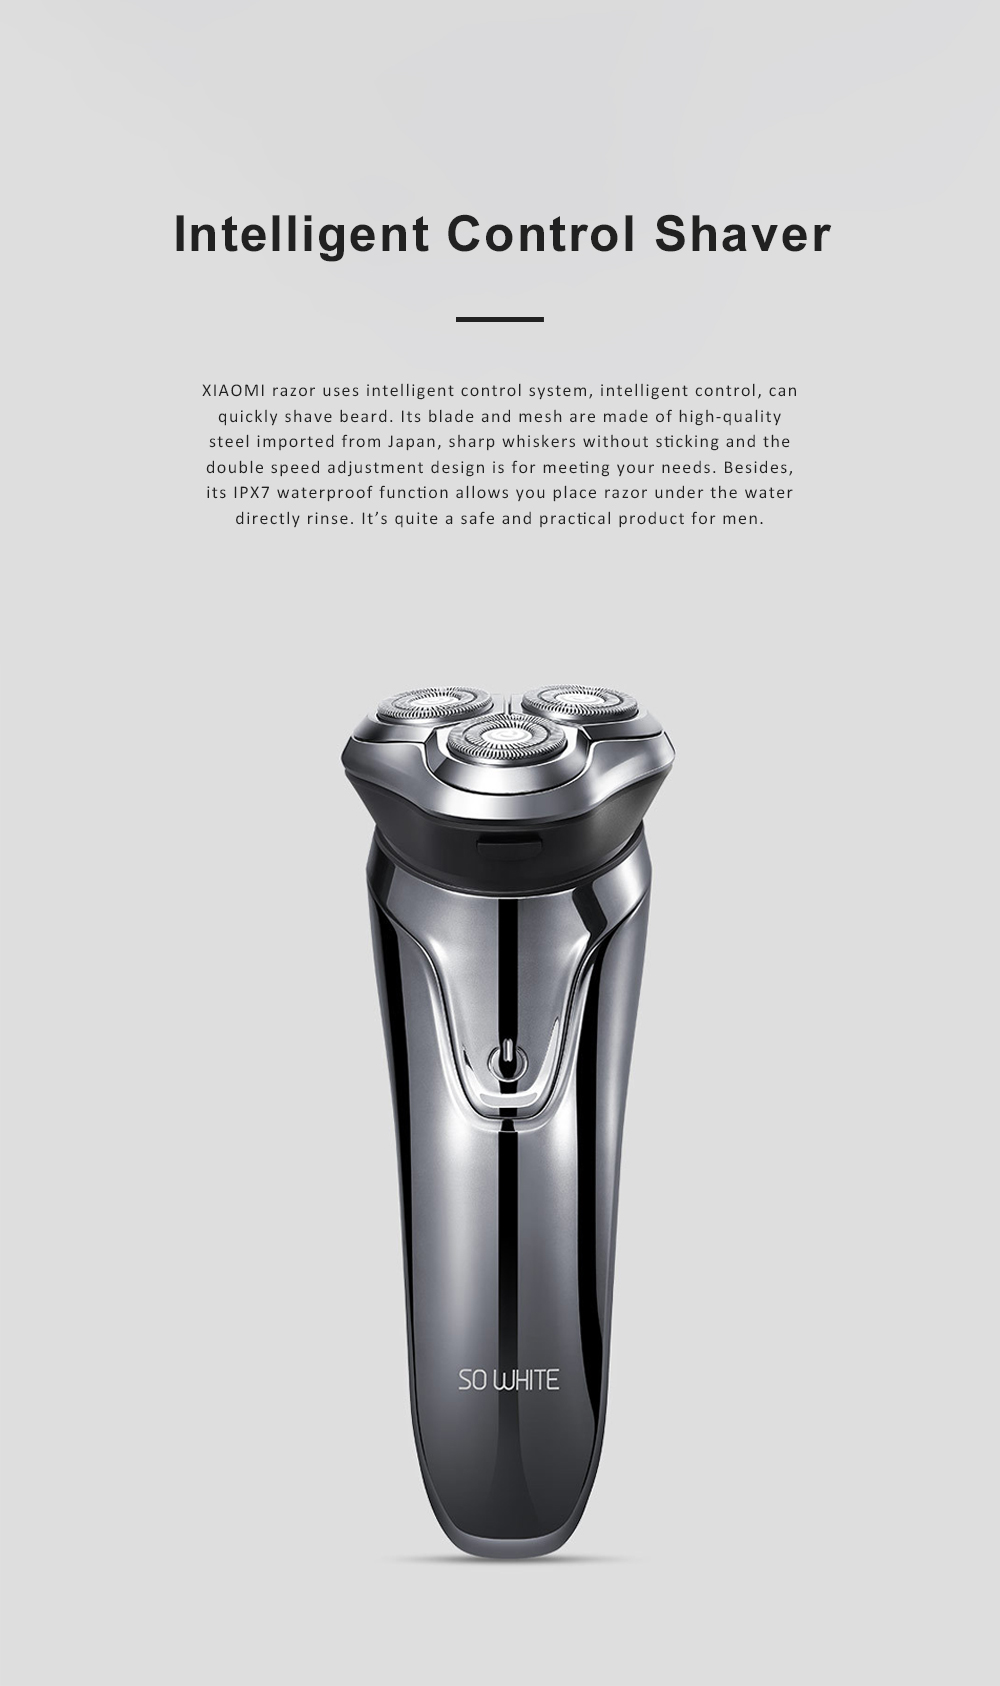 Intelligent Control Shaver Three-blade Reciprocating Electric Razor 3D Floating Razor Rechargeable Electric Shaver 0